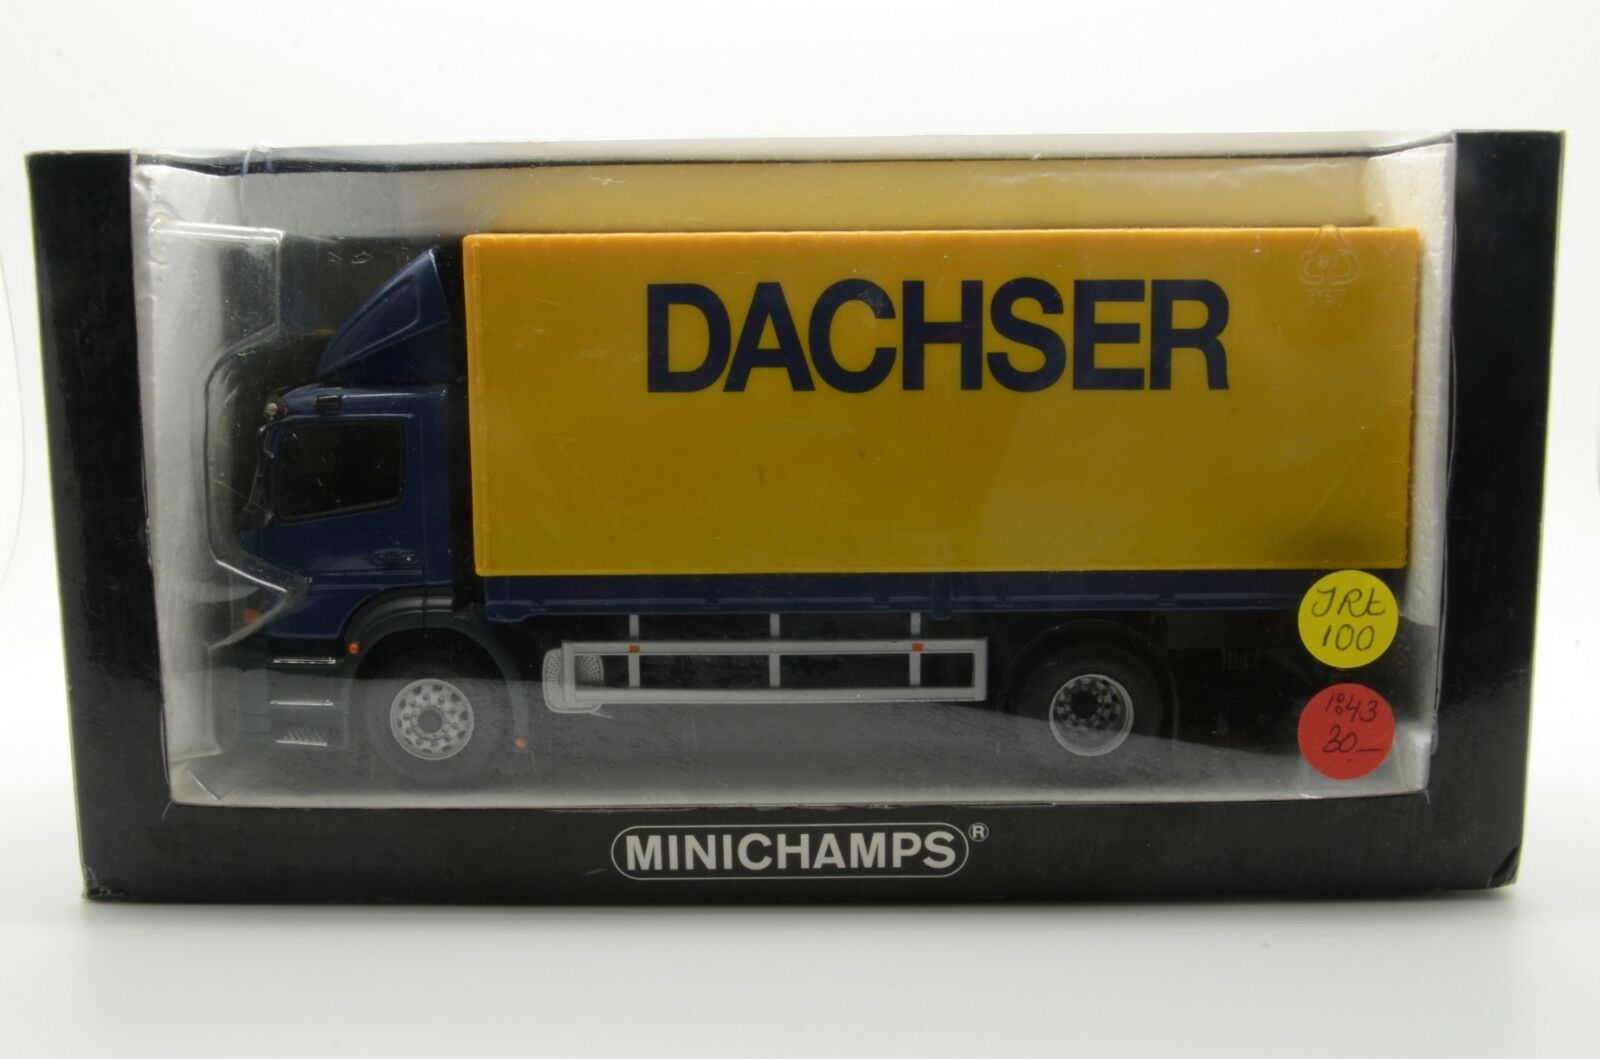 MERCEDES ATEGO 1828 camion Dachser Minichamps 439 380022 1 43